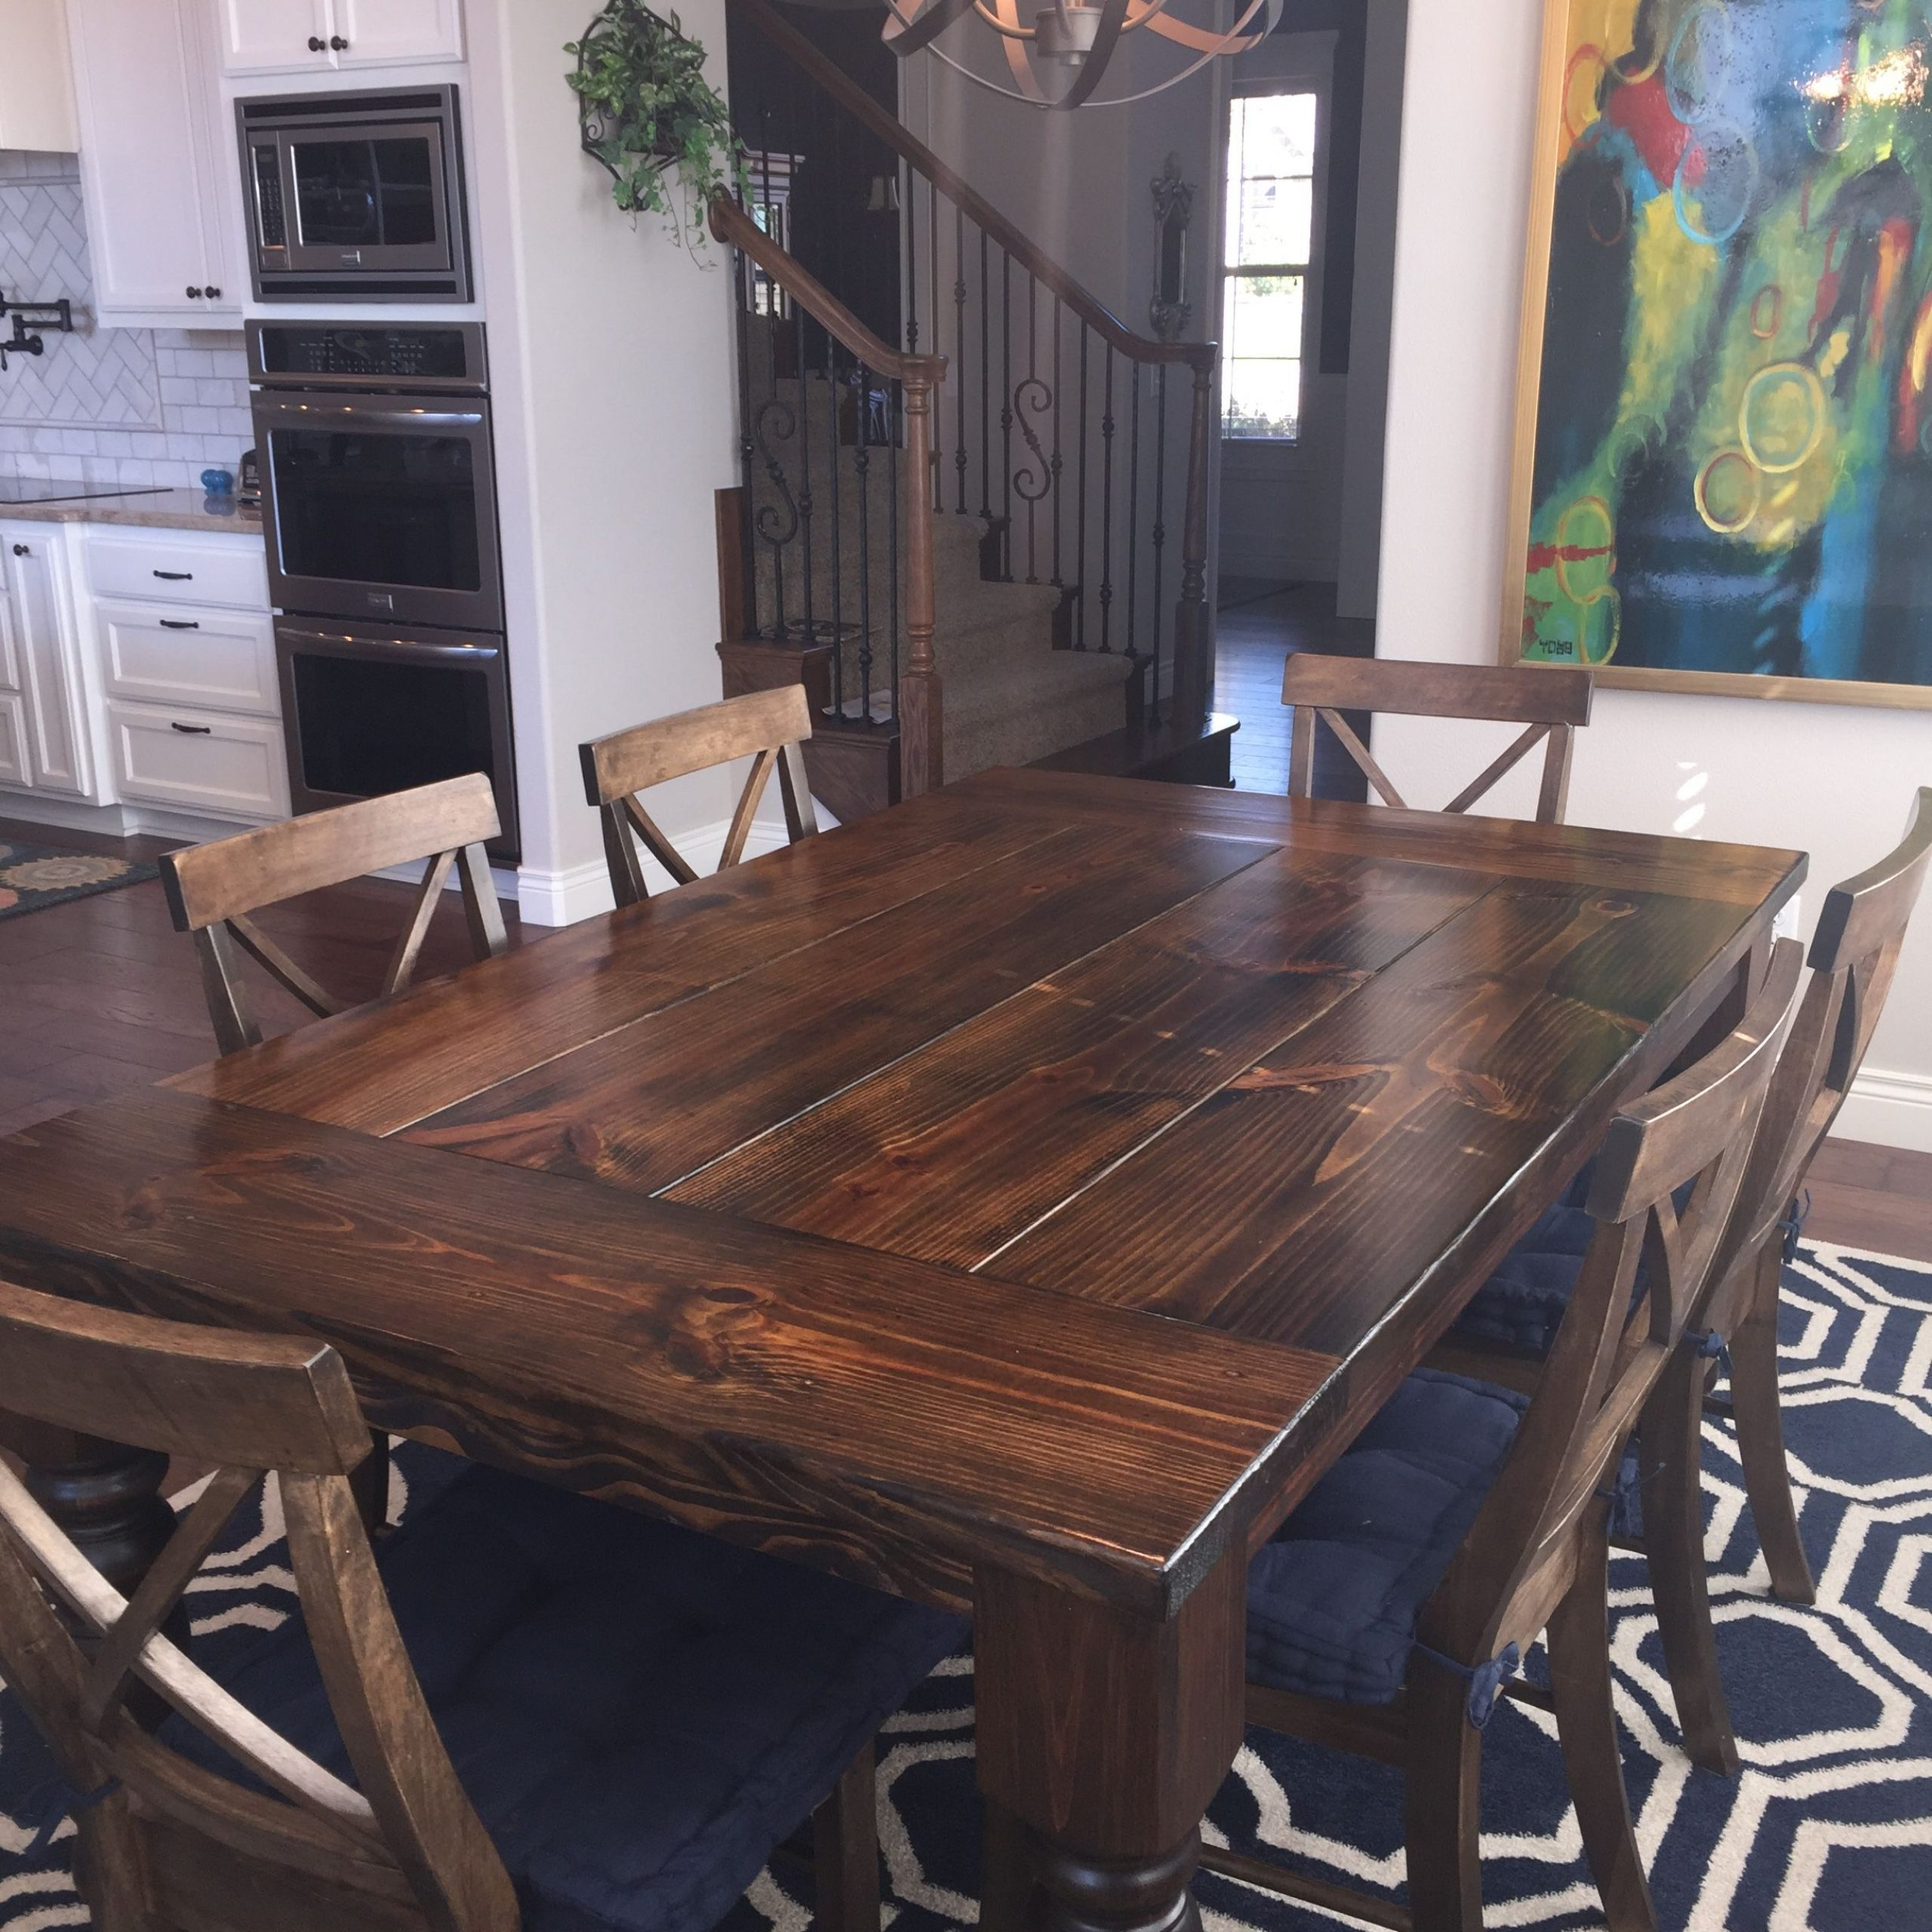 Distressed Walnut And Black Finish Wood Modern Country Dining Tables With Fashionable Baluster Turned Leg Table (View 11 of 30)